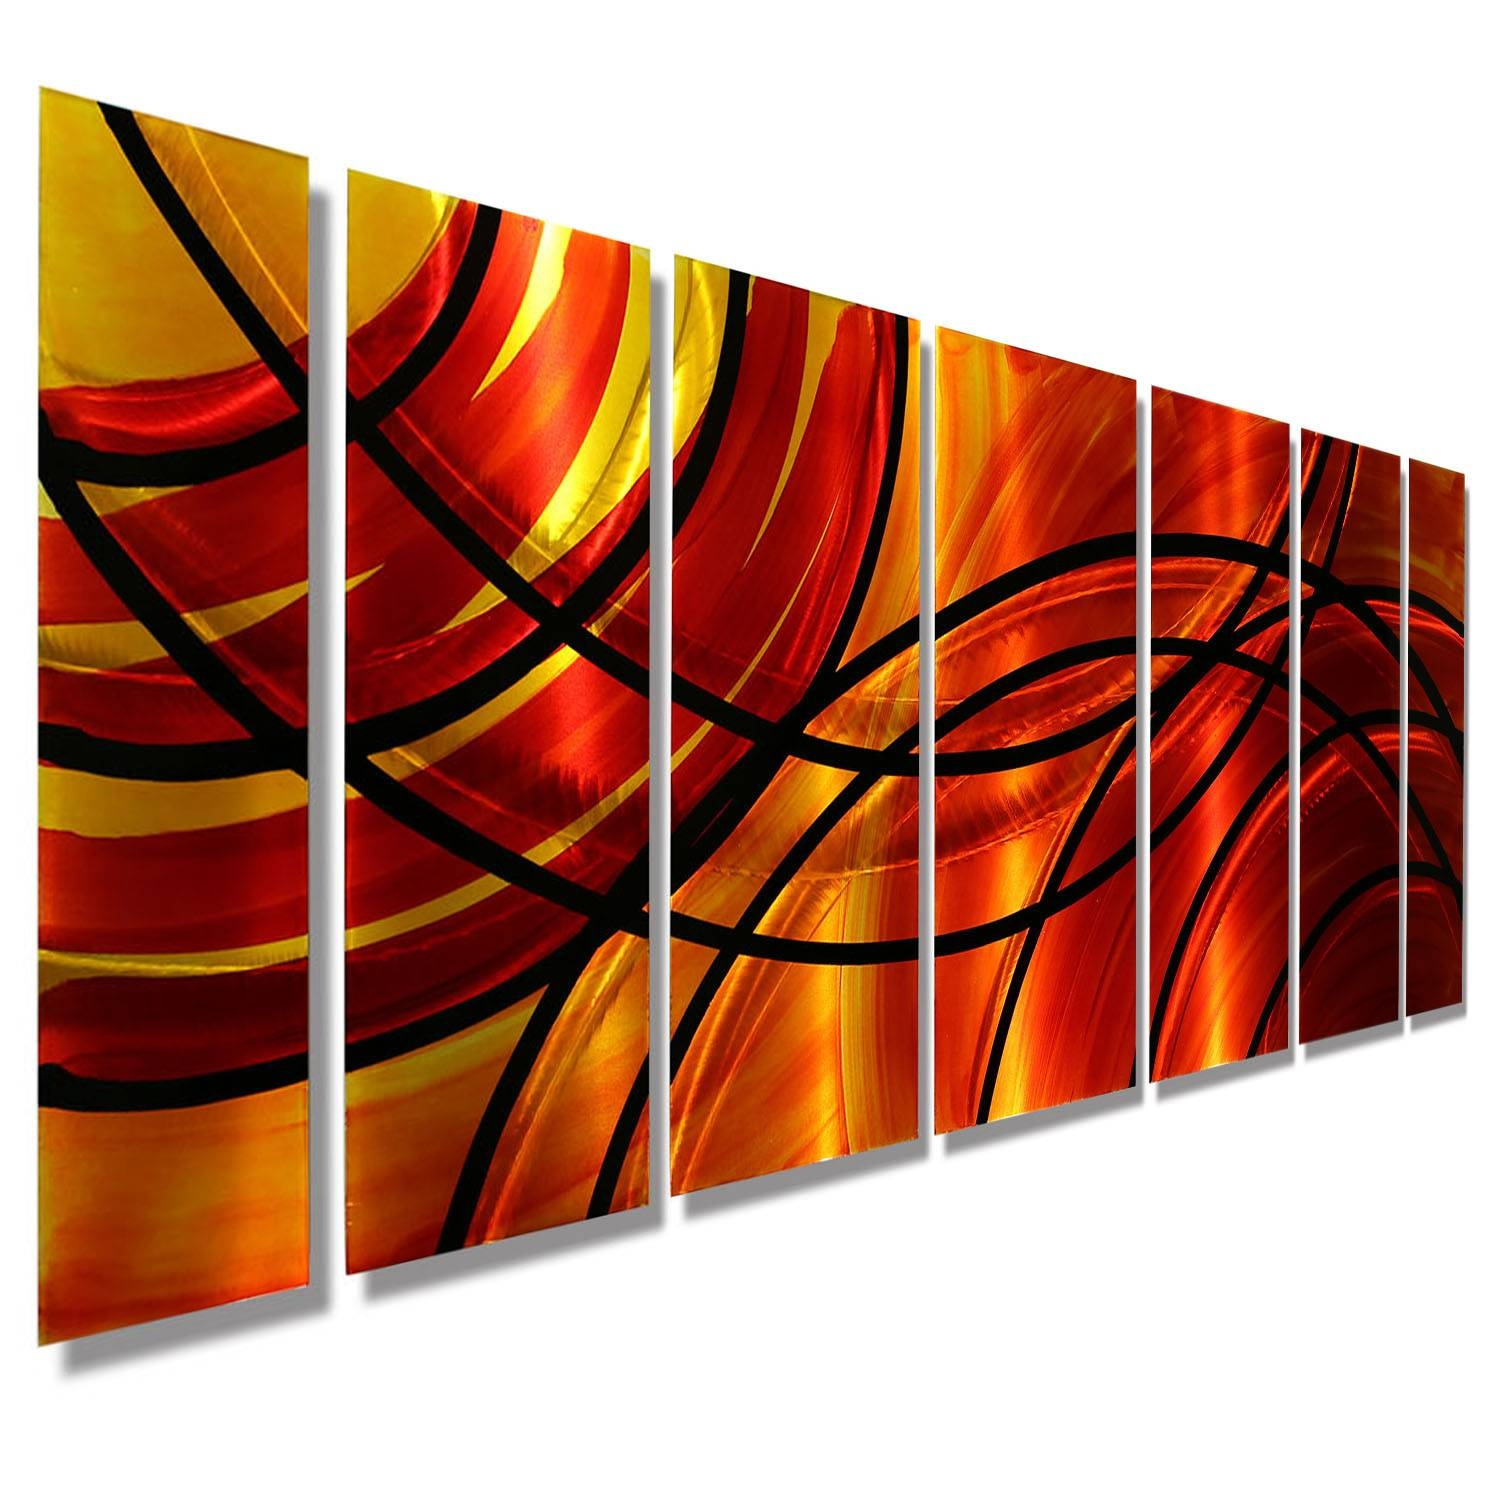 Boundfire – Red & Orange Modern Metal Wall Artjon Allen Inside Most Up To Date Metallic Wall Art (View 22 of 25)